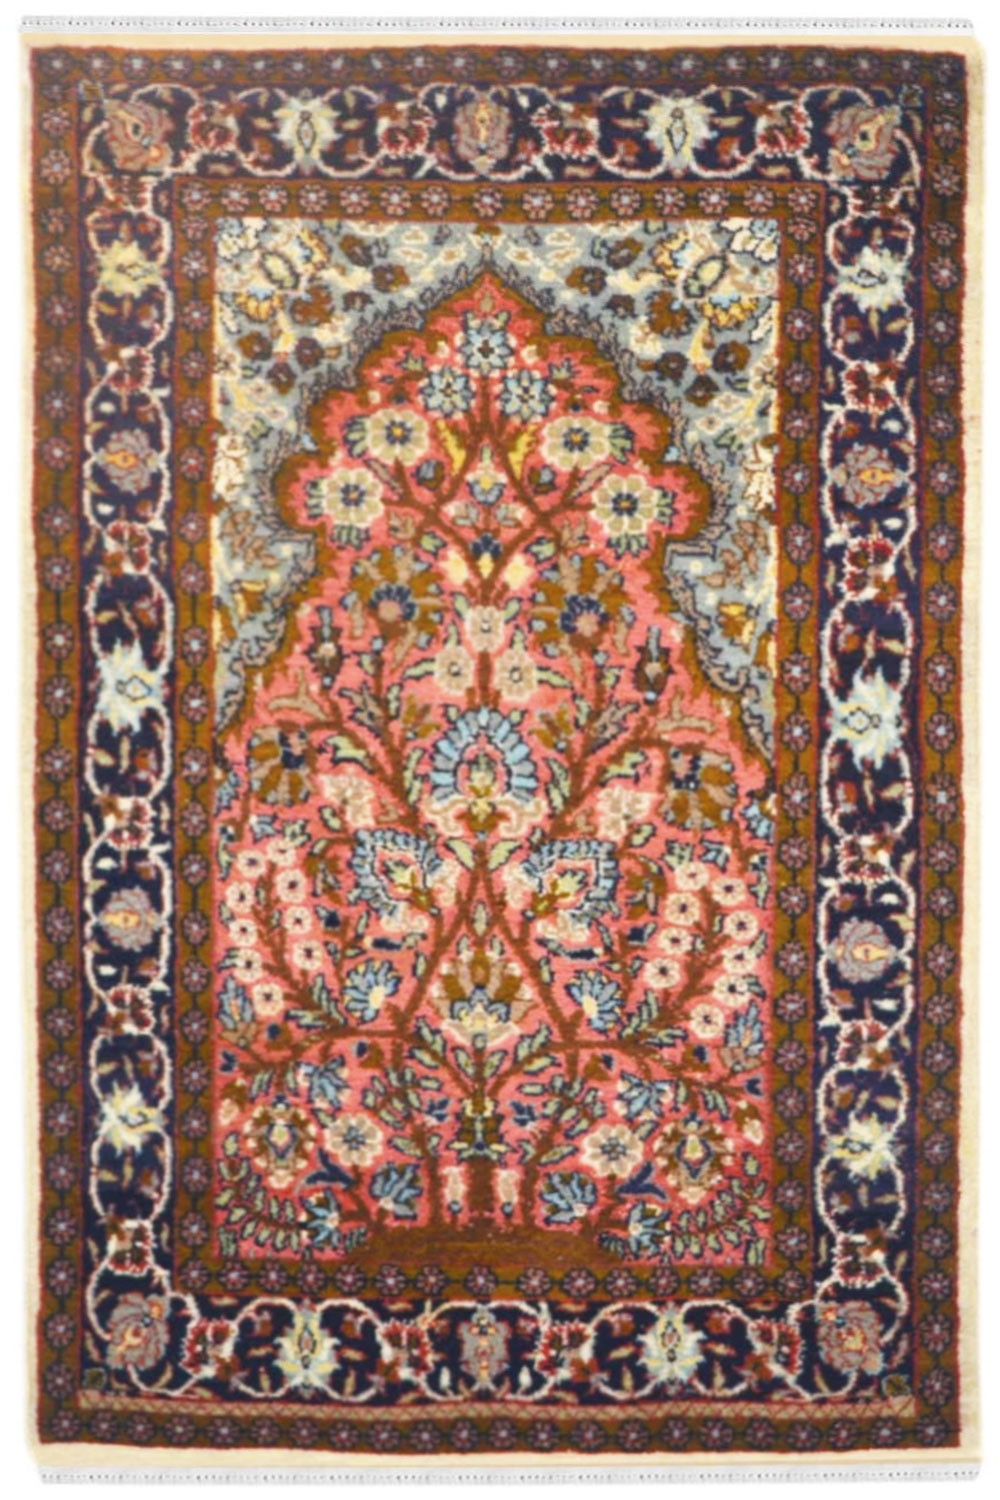 Jaal Tree Of Life Rug Online At An Amazing Price From Rugs